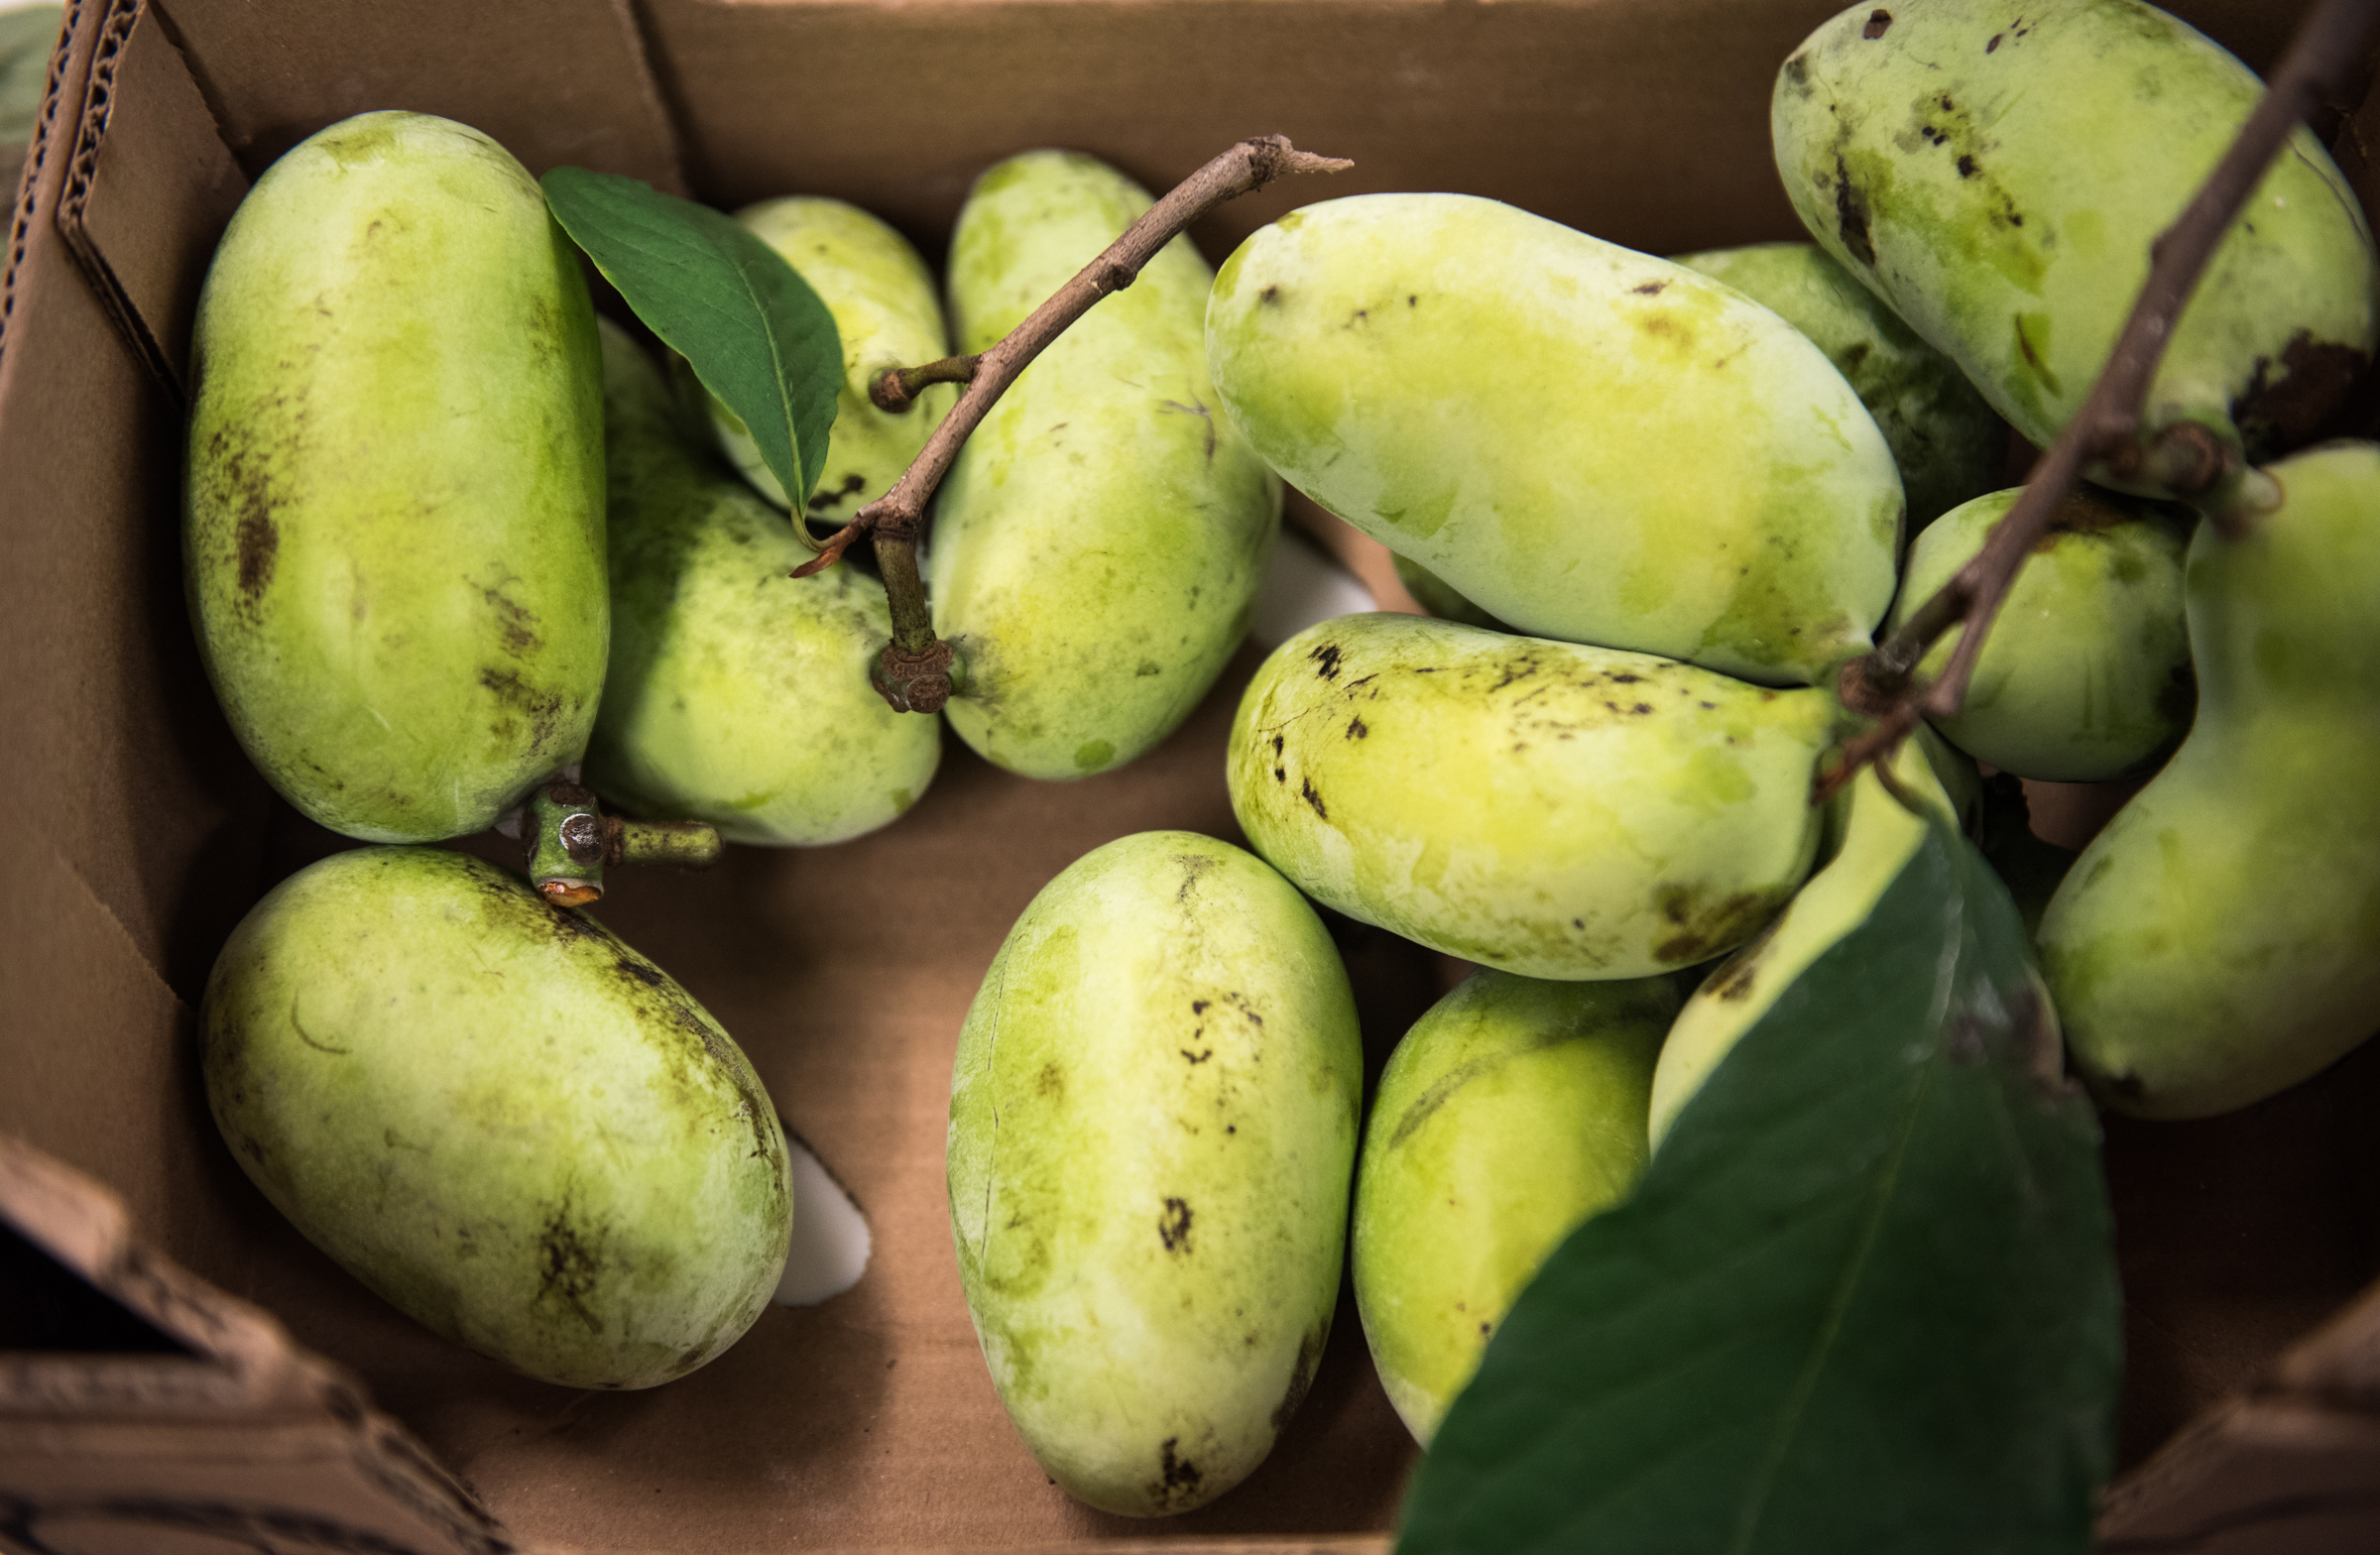 Easy to bruise and possessing a short, several-day shelf life, pawpaws are rarely found at supermarkets. Instead, look for them September through October at farmer´s markets and locally driven co-ops.